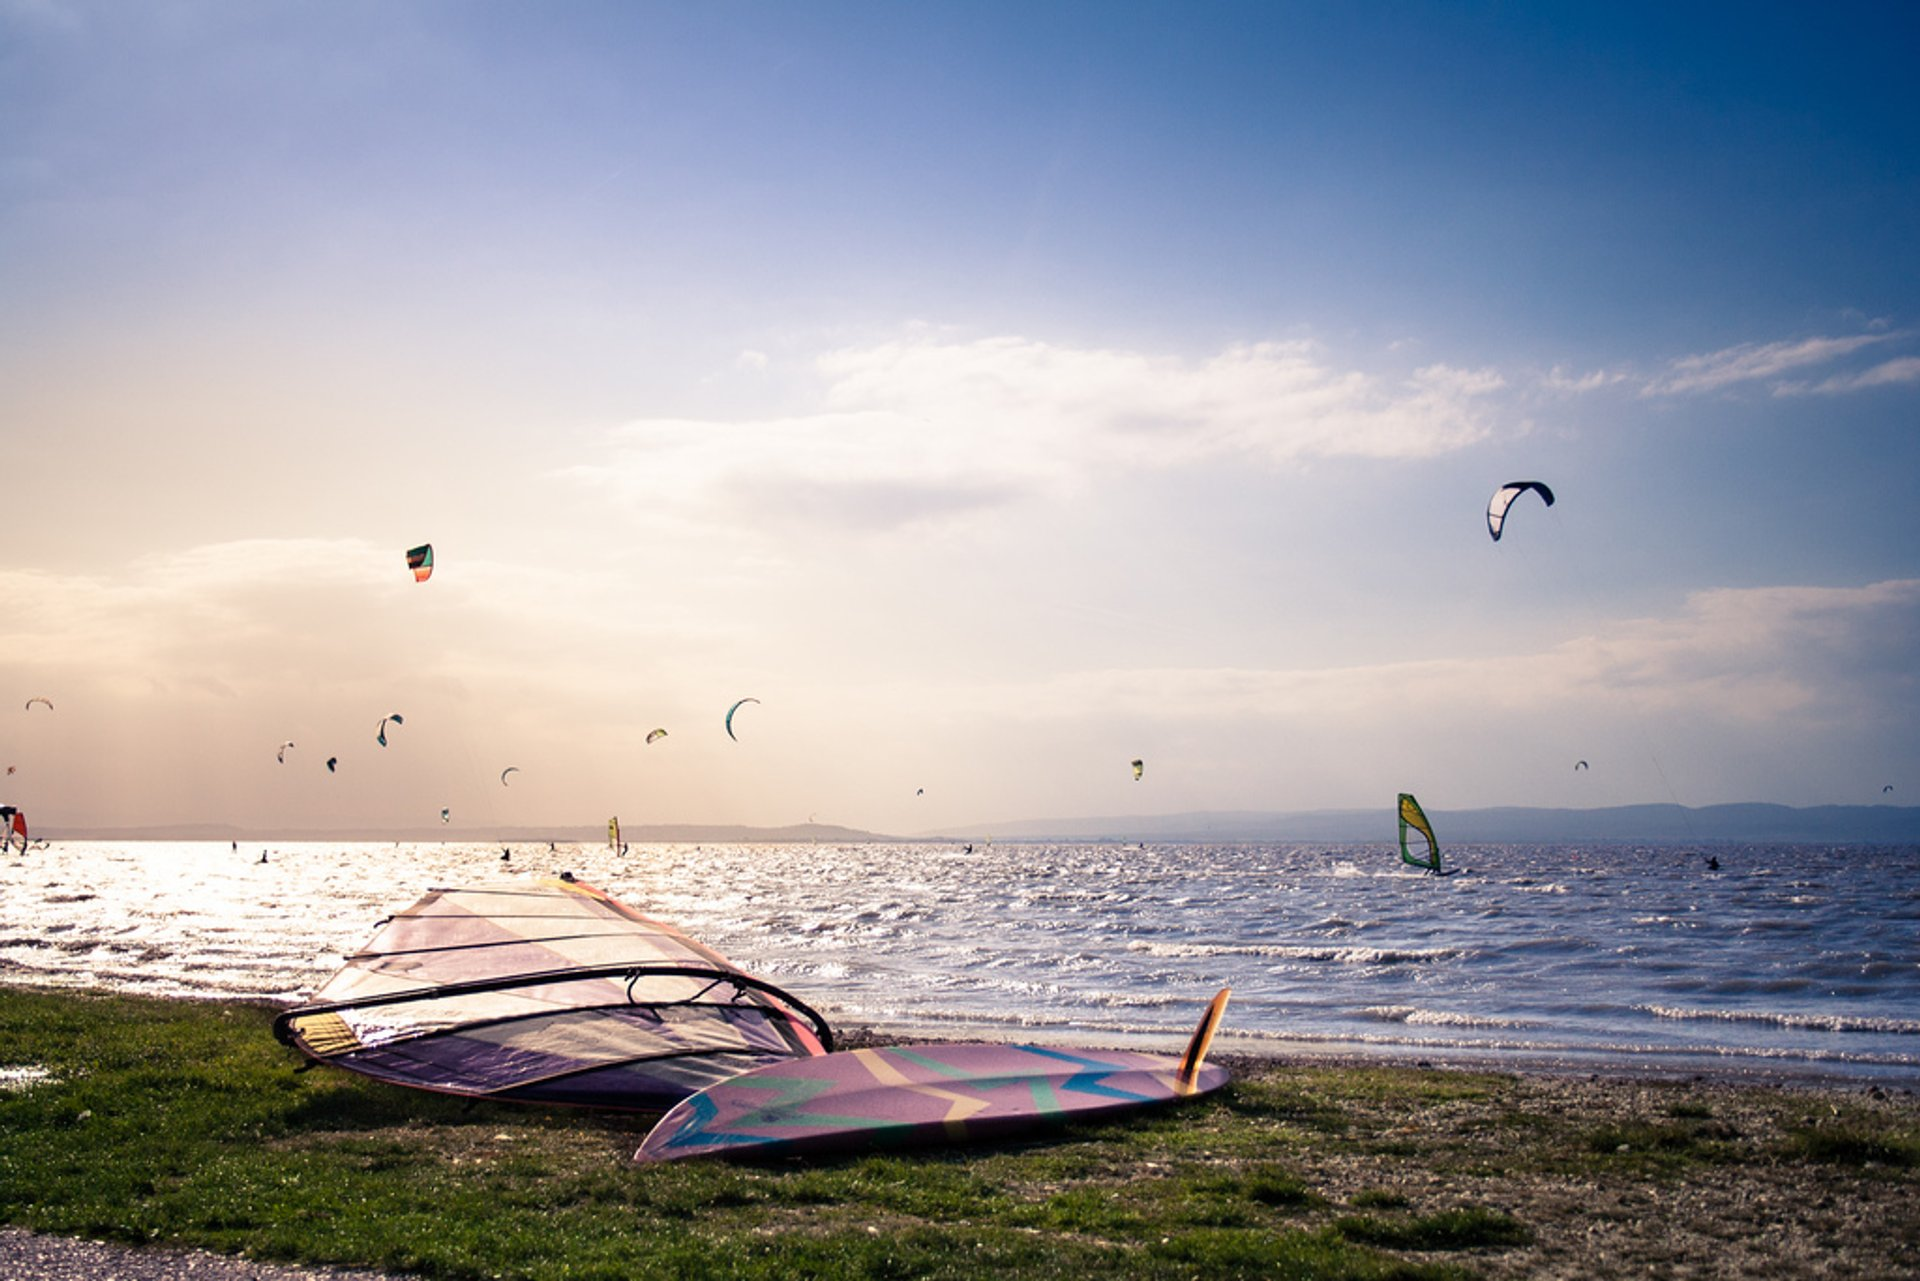 Wind and Kitesurfing in Austria 2020 - Best Time